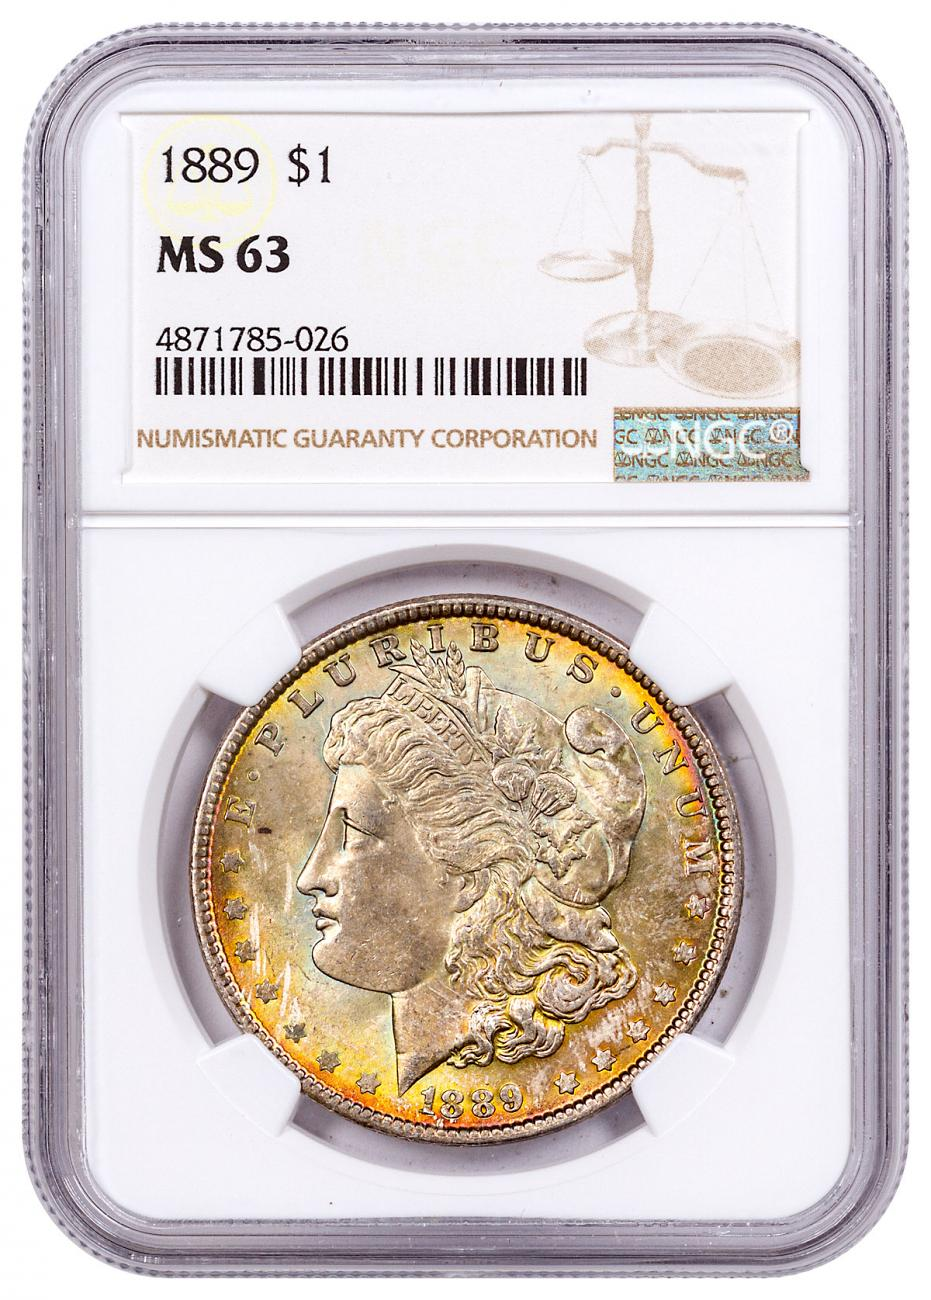 1889 Morgan Silver Dollar Toned NGC MS63 CPCR 5026